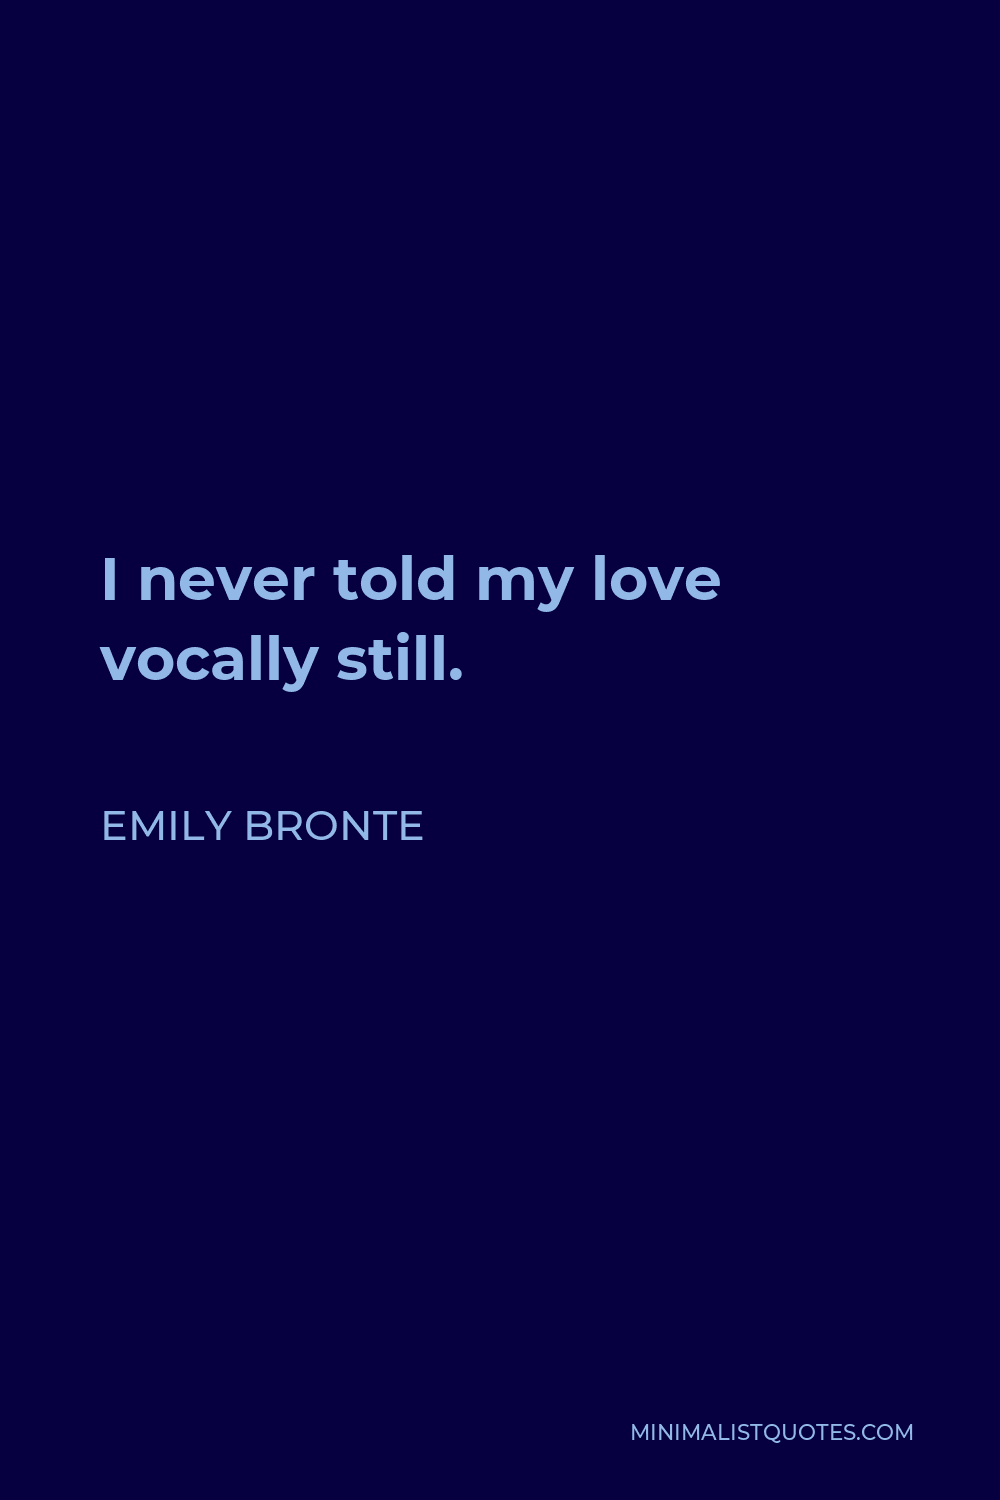 Emily Bronte Quote - I never told my love vocally still.